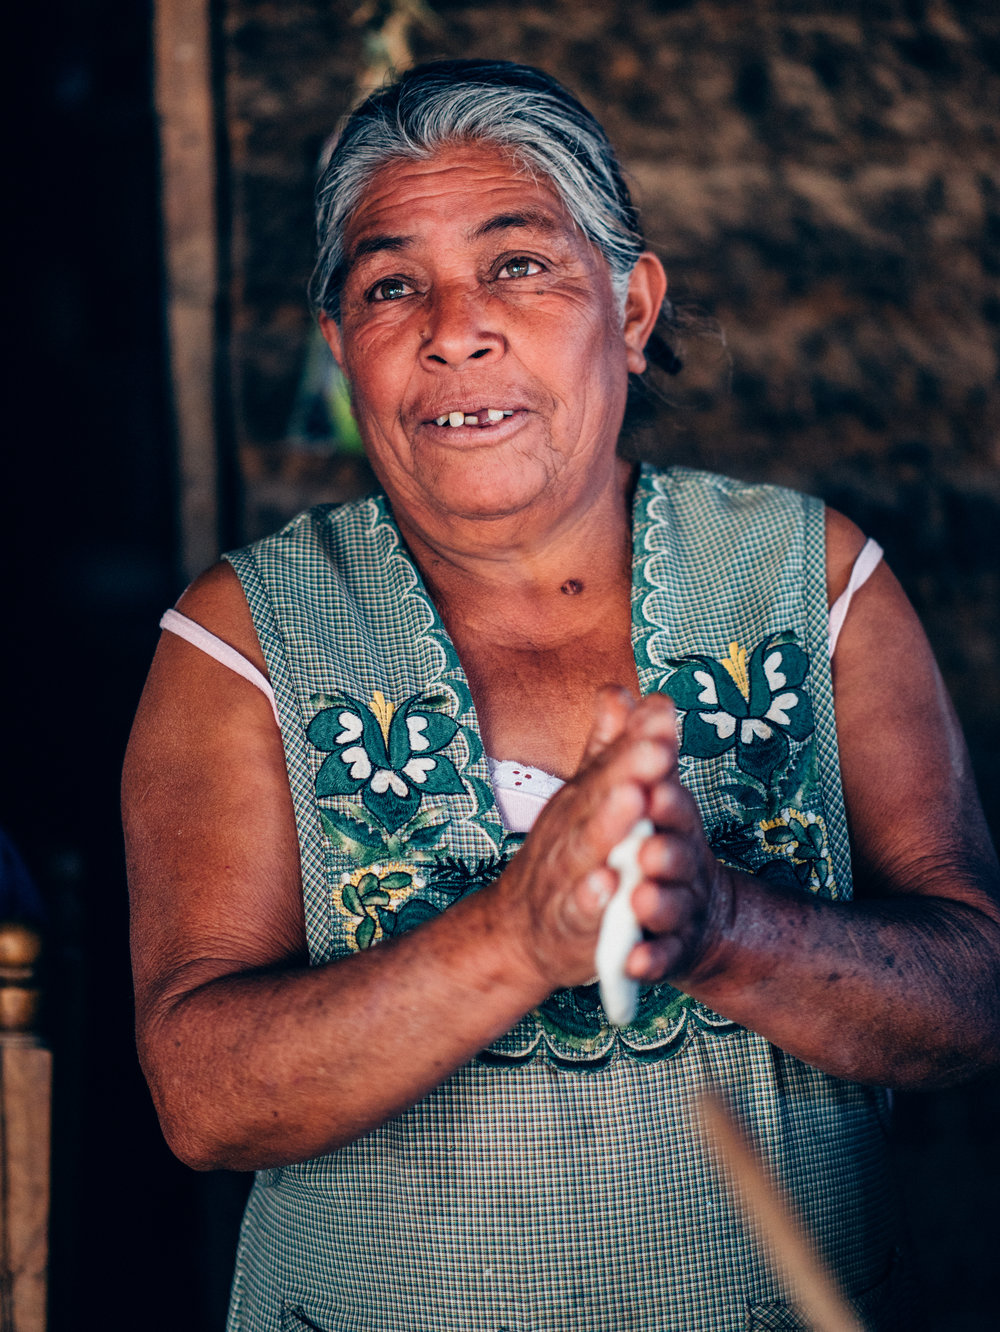 And this is Alicia! Full of smiles and laughter, patting out tortillas and making our wonderful breakfast.